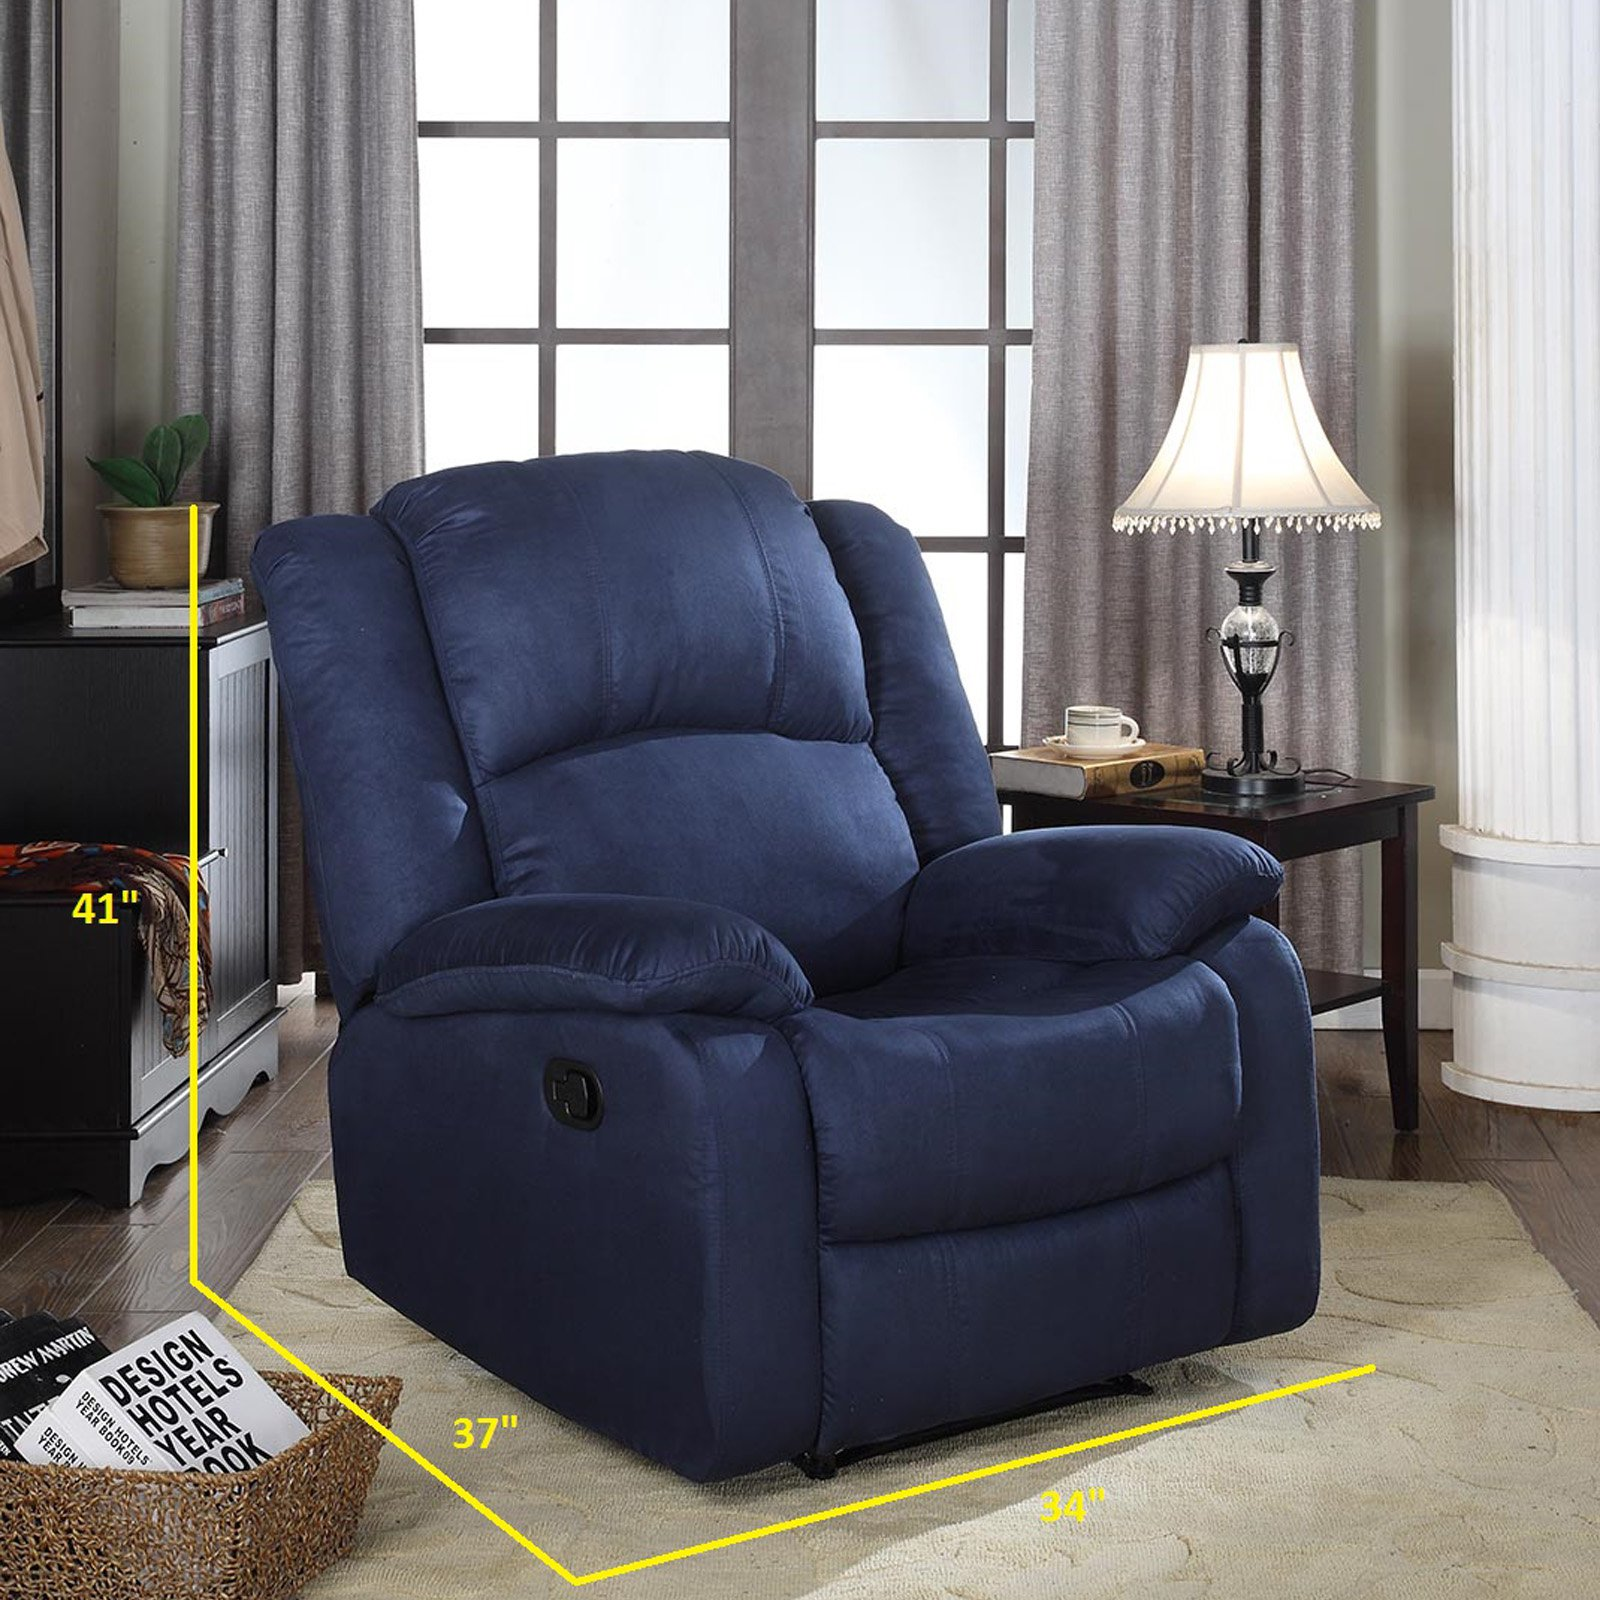 NH Designs 73012 Microfiber Recliner